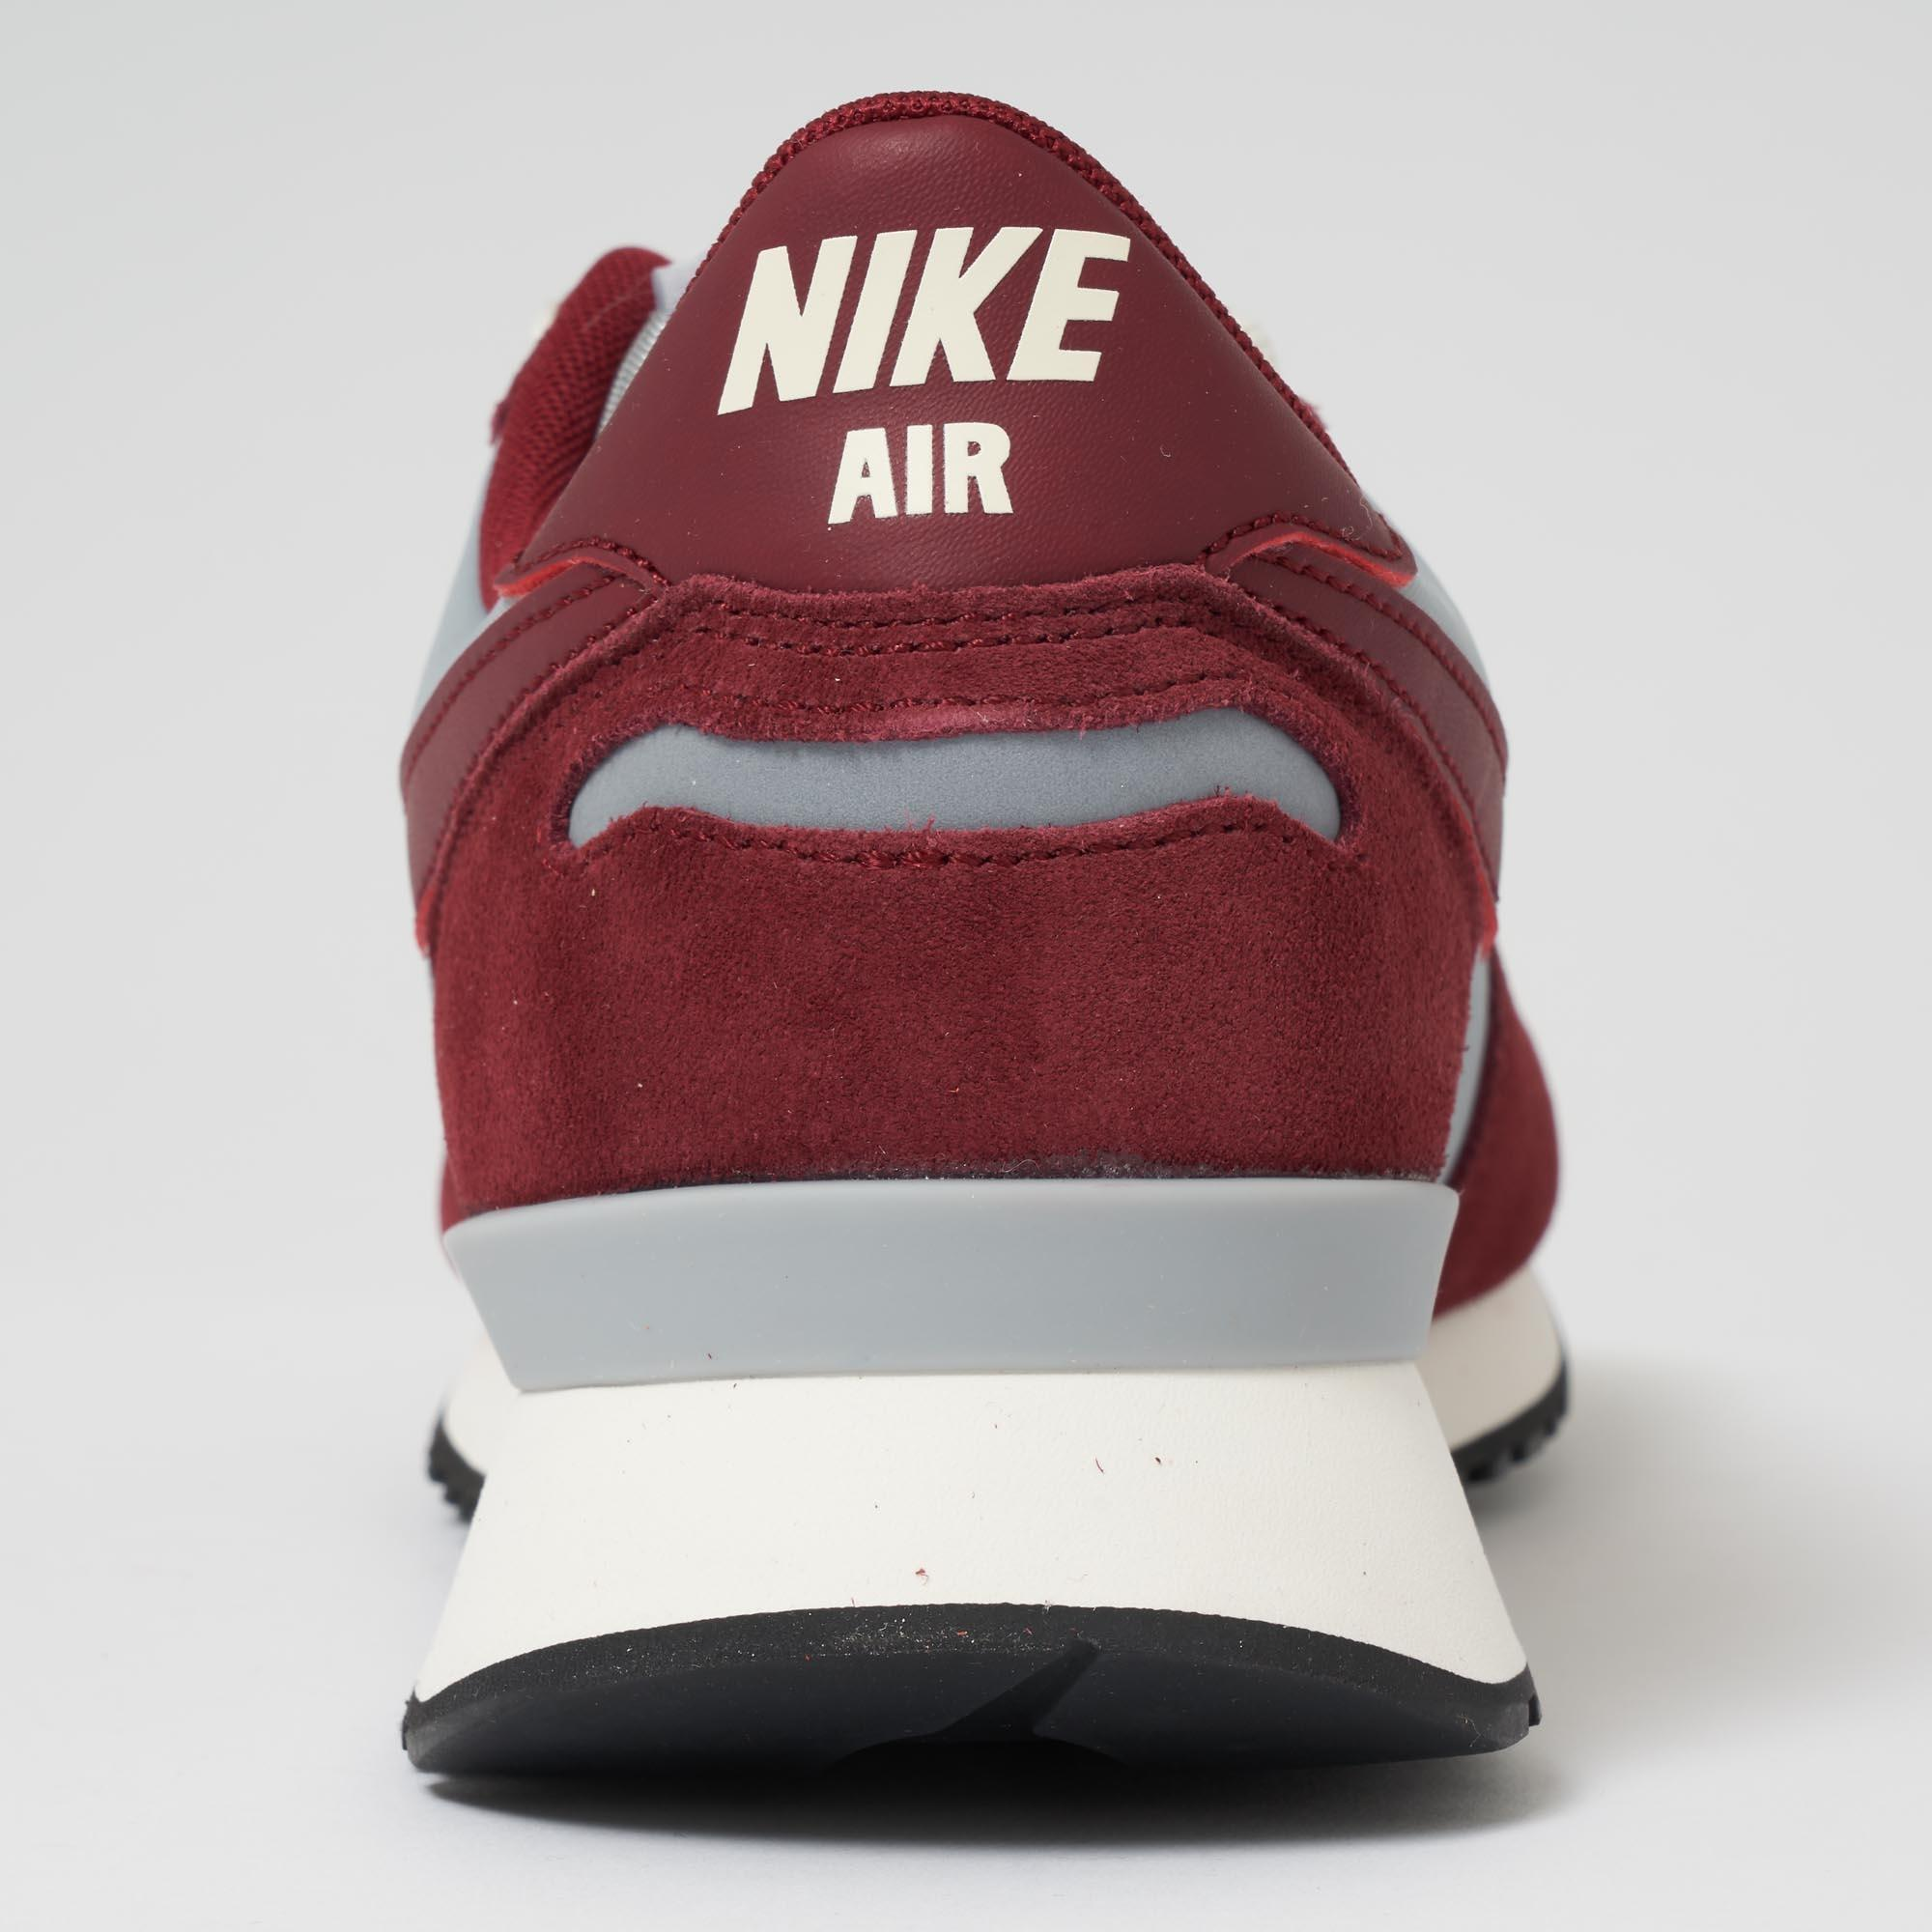 the latest 64549 25d02 Lyst - Nike Air Vortex - Wolf Grey, Team Red, Sail   Black in Red ...